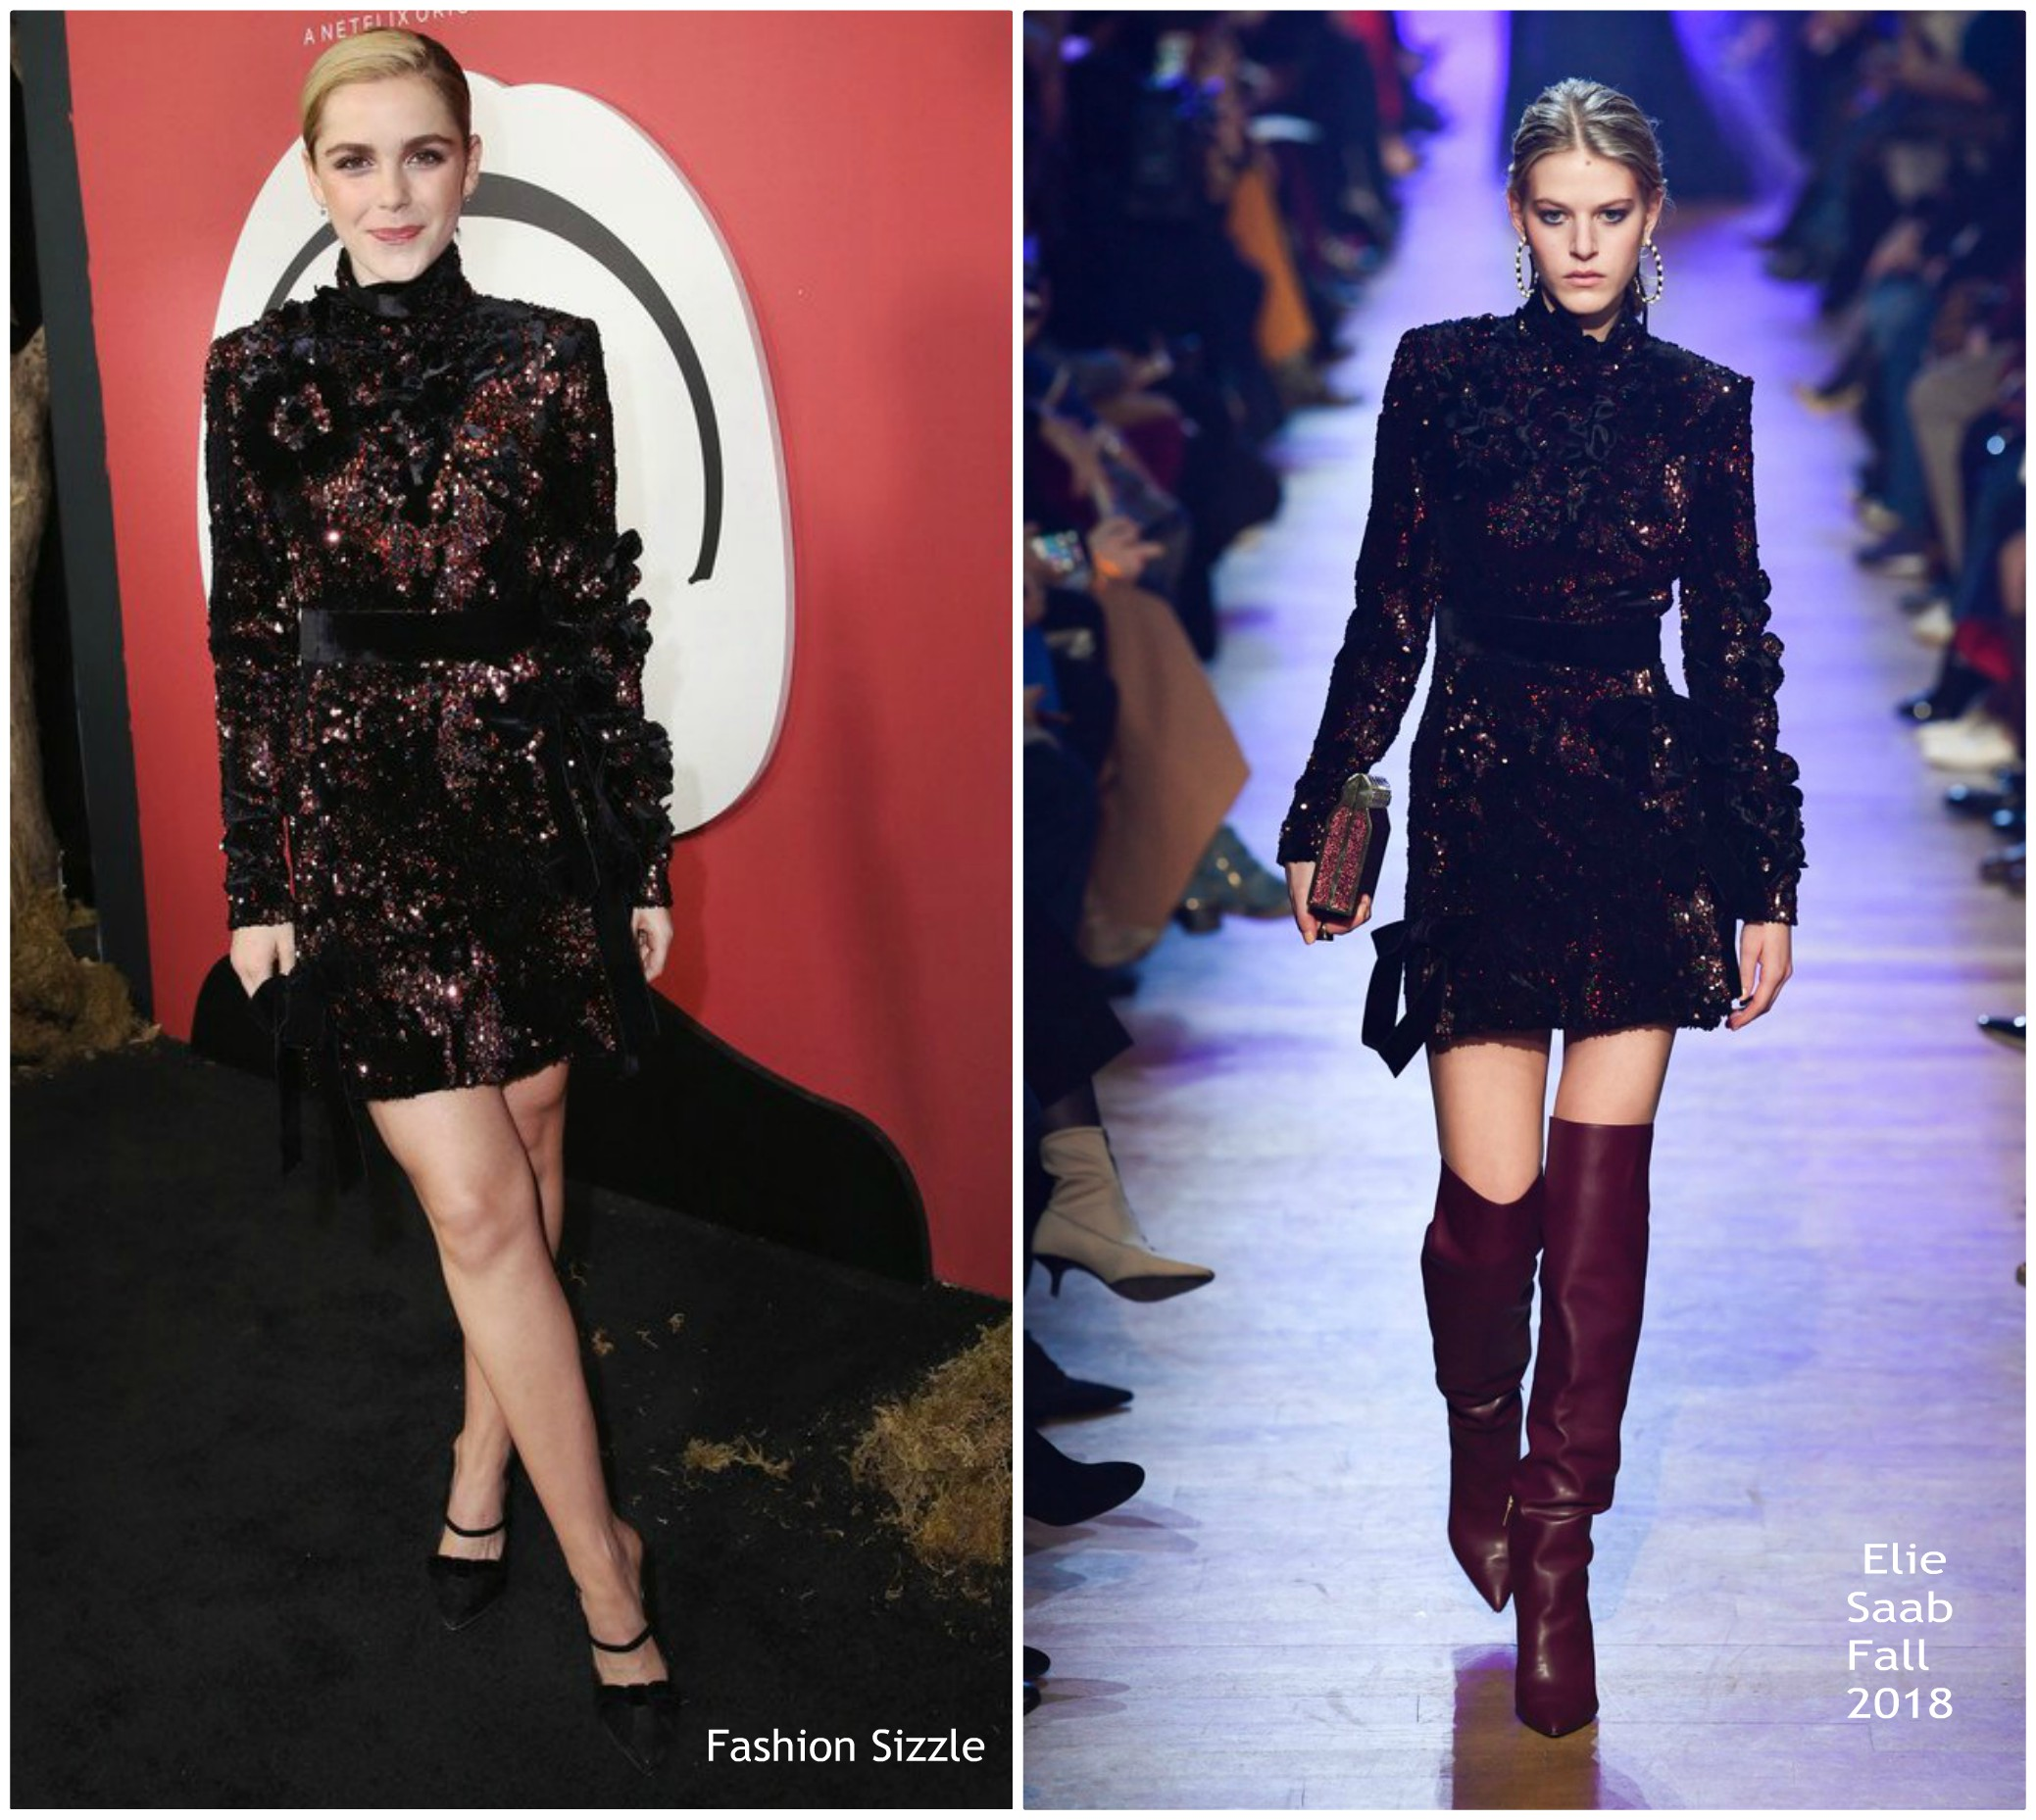 kiernan-shipka-in-elie-saab-netflixs-chilling-adventures-of-sabrina-in-hollywood